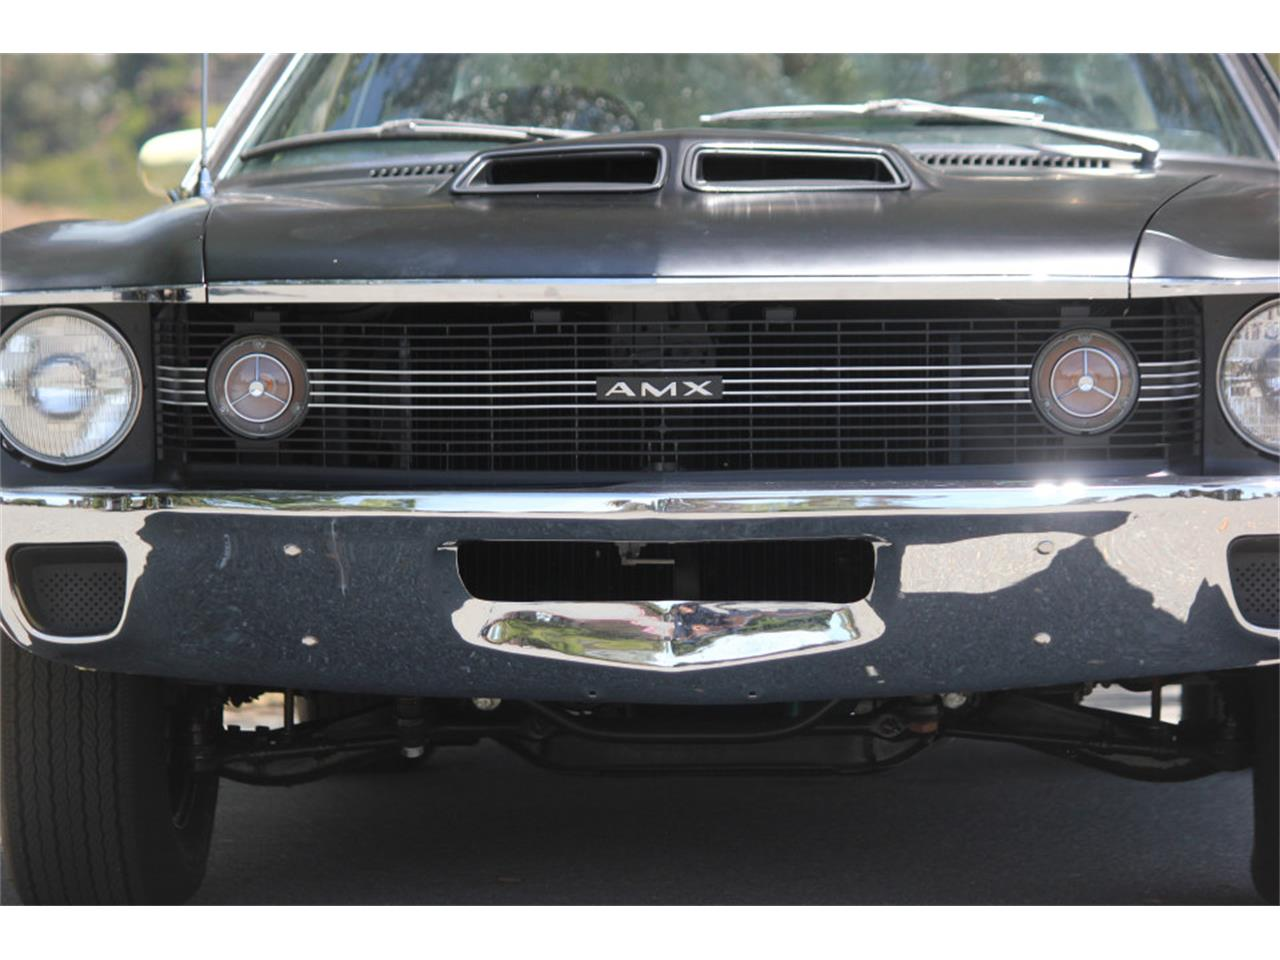 Large Picture of 1970 AMC AMX located in San Diego  California - $59,500.00 - QCFB